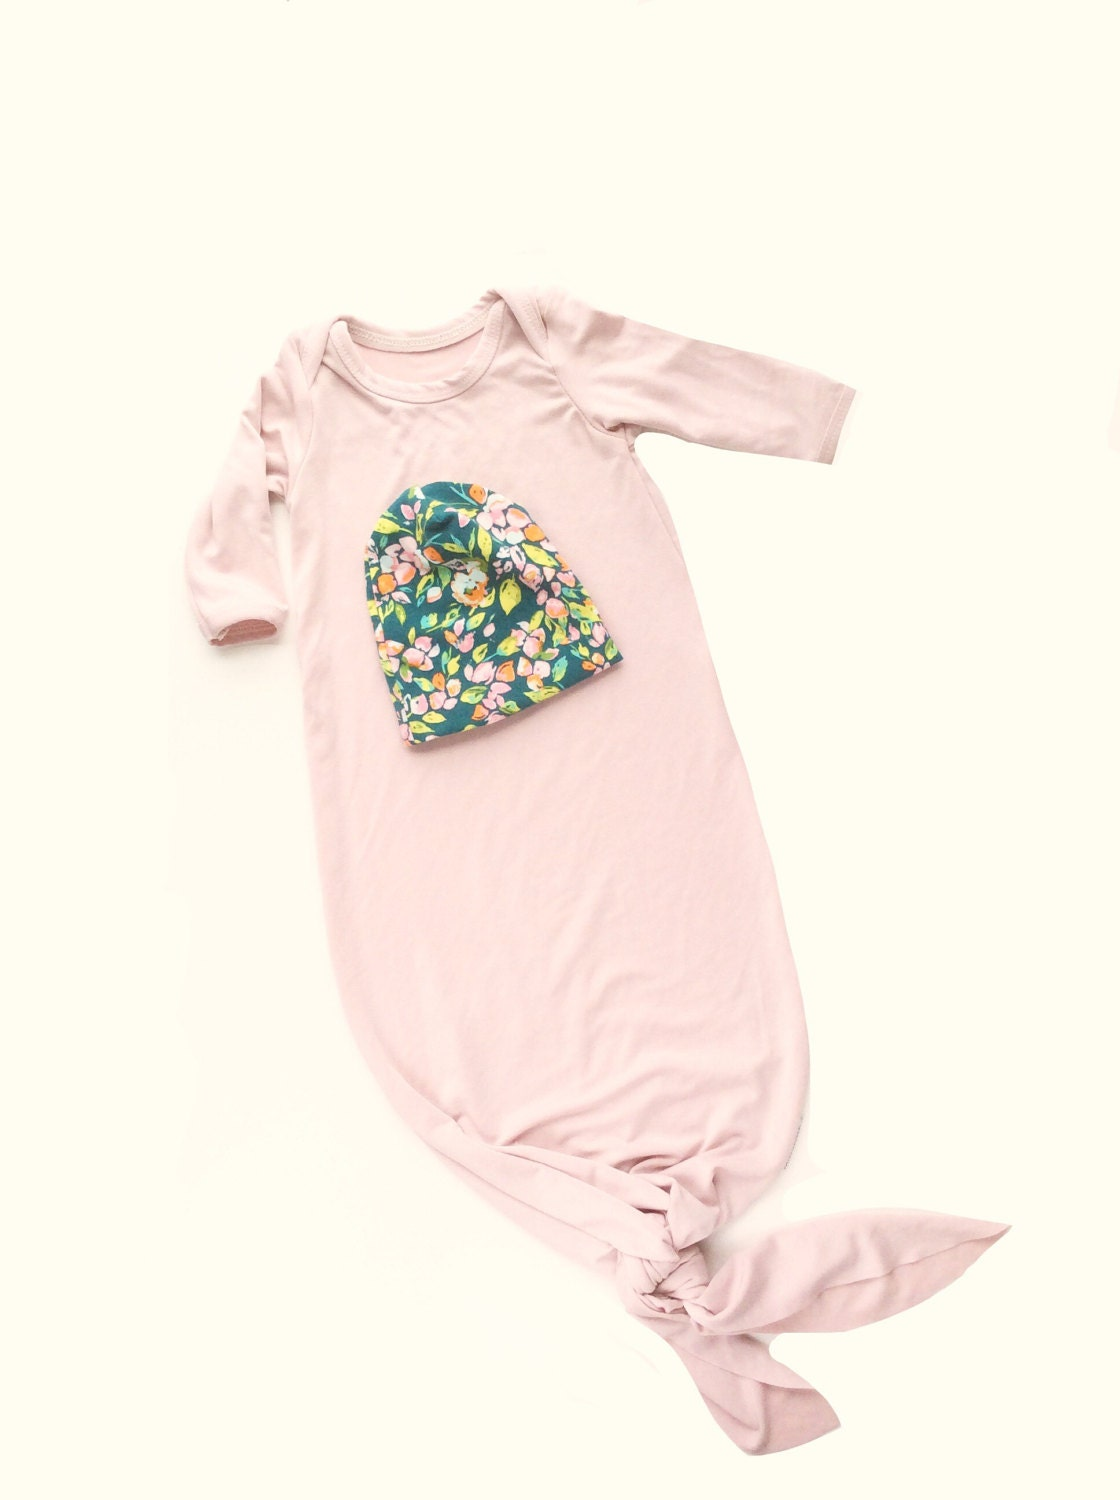 Knotted baby gown pink baby gown bamboo baby clothes Newborn